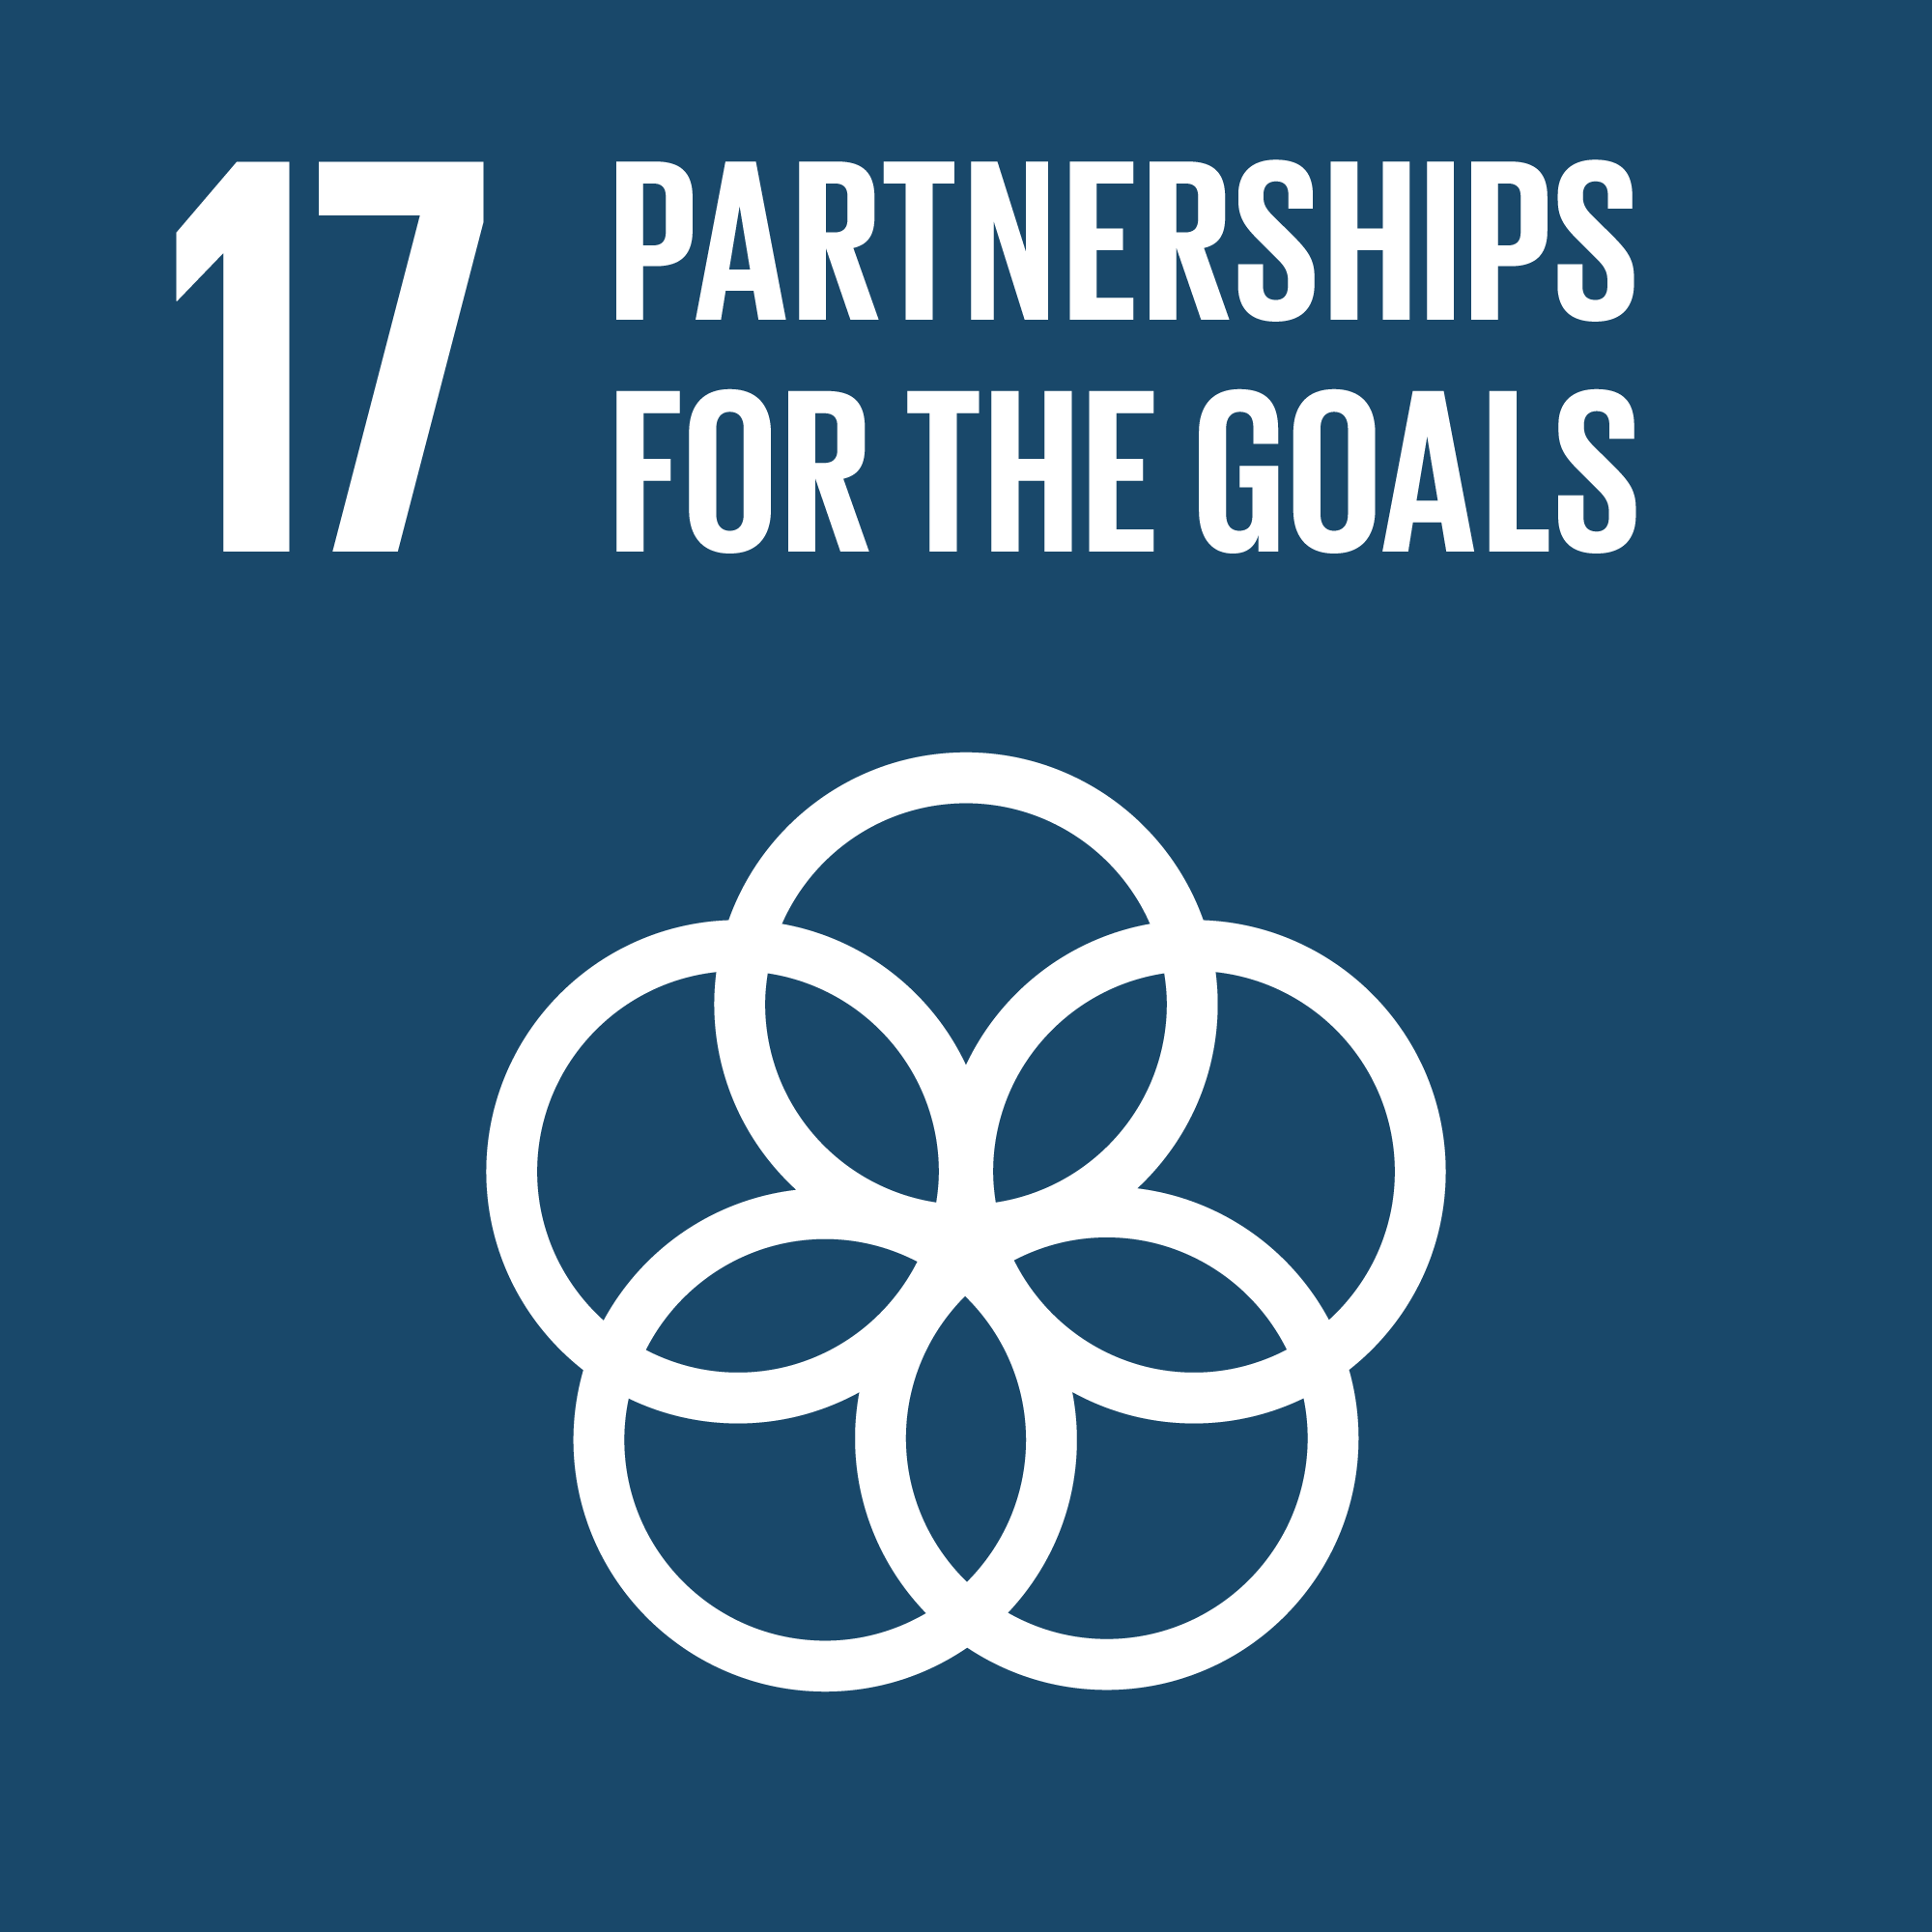 Agenda 2030 goal number 17: partnerships for the goals